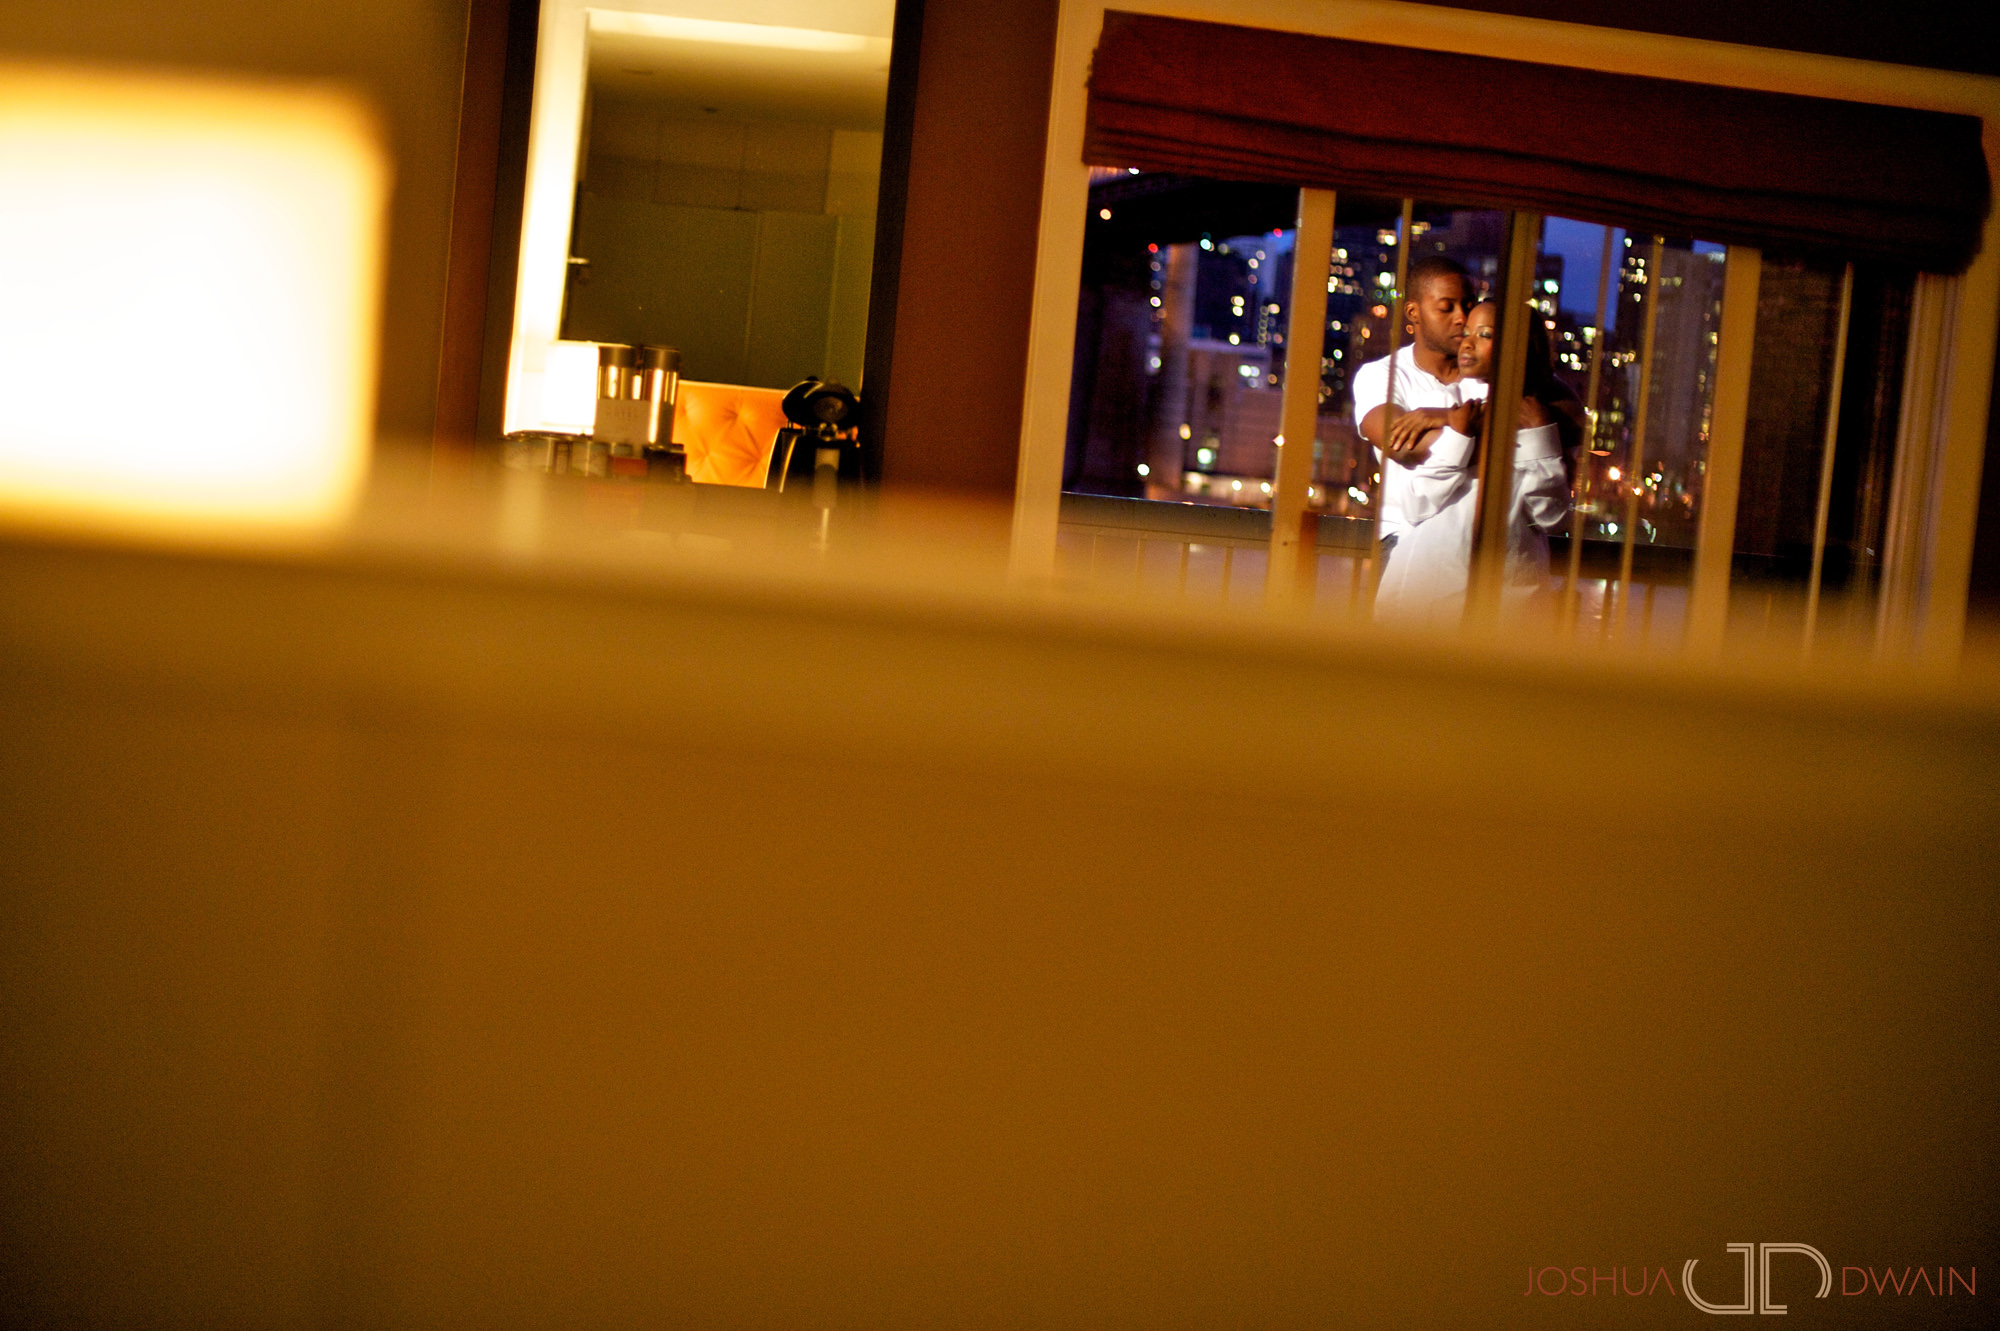 asisat-ben-006-ravel-hotelqueens-ny-engagement-photographer-joshua-dwain-2011-11-23_ab_026